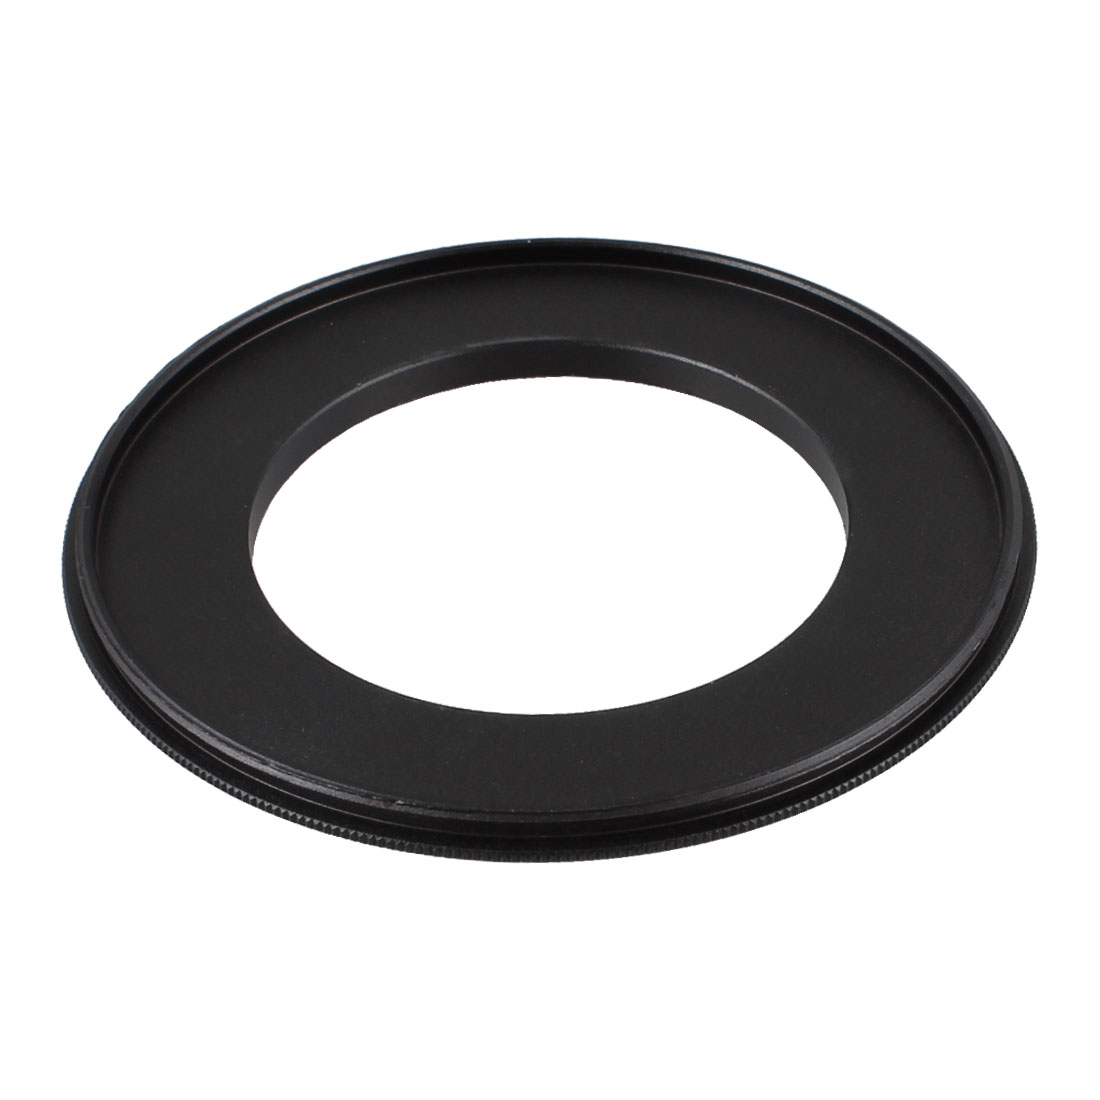 52mm-77mm 52mm to 77mm Male to Male Step up Ring Adapter Black for Camera